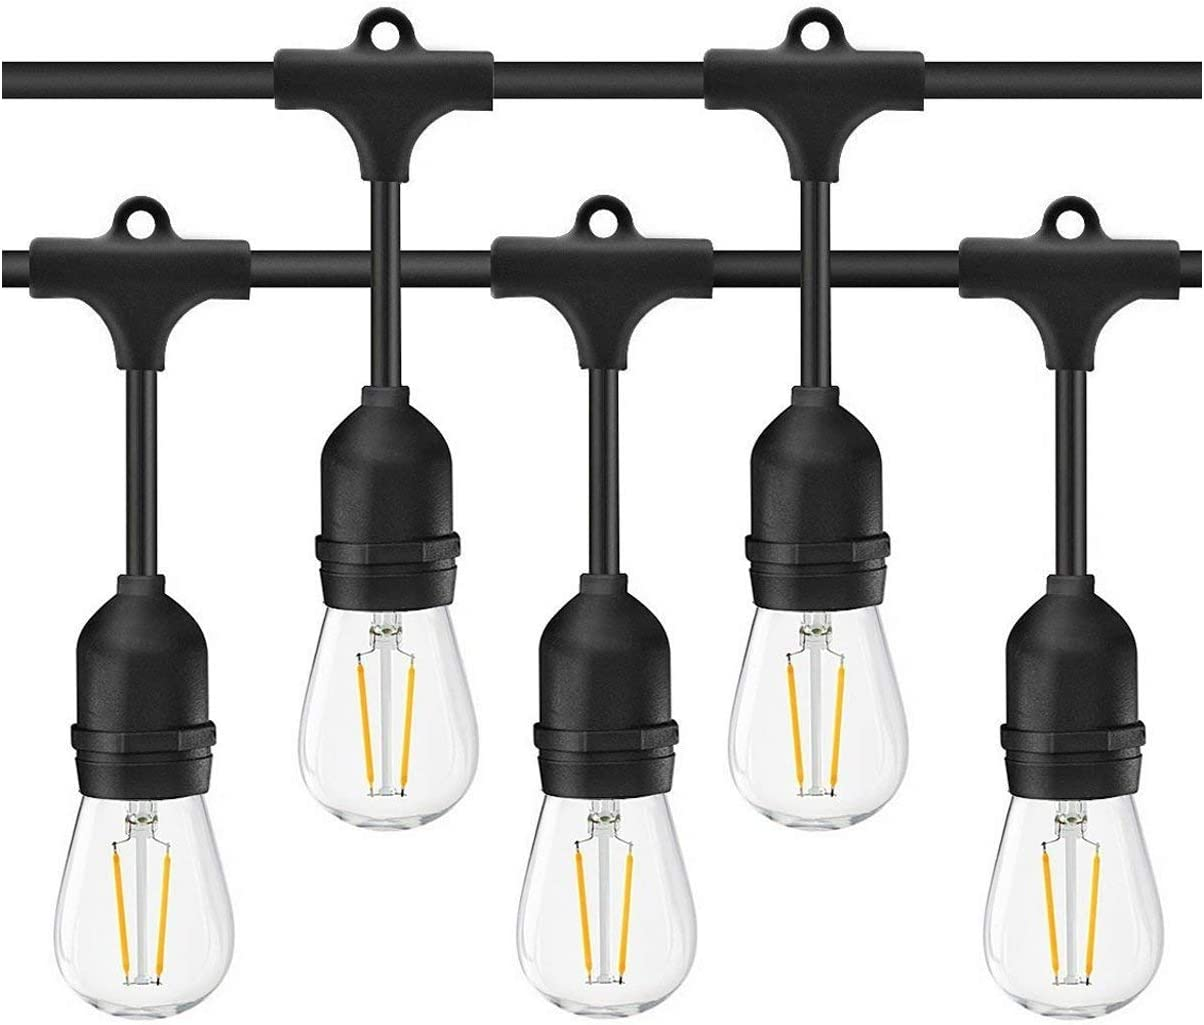 BRTLX Commercial Grade Outdoor Weatherproof S14 LED String Lights 48Ft with 15 Dropped Sockets 2W 15Pcs S14 LED Edison Filament Bulb Included for Patio Courtyard Porch Wedding